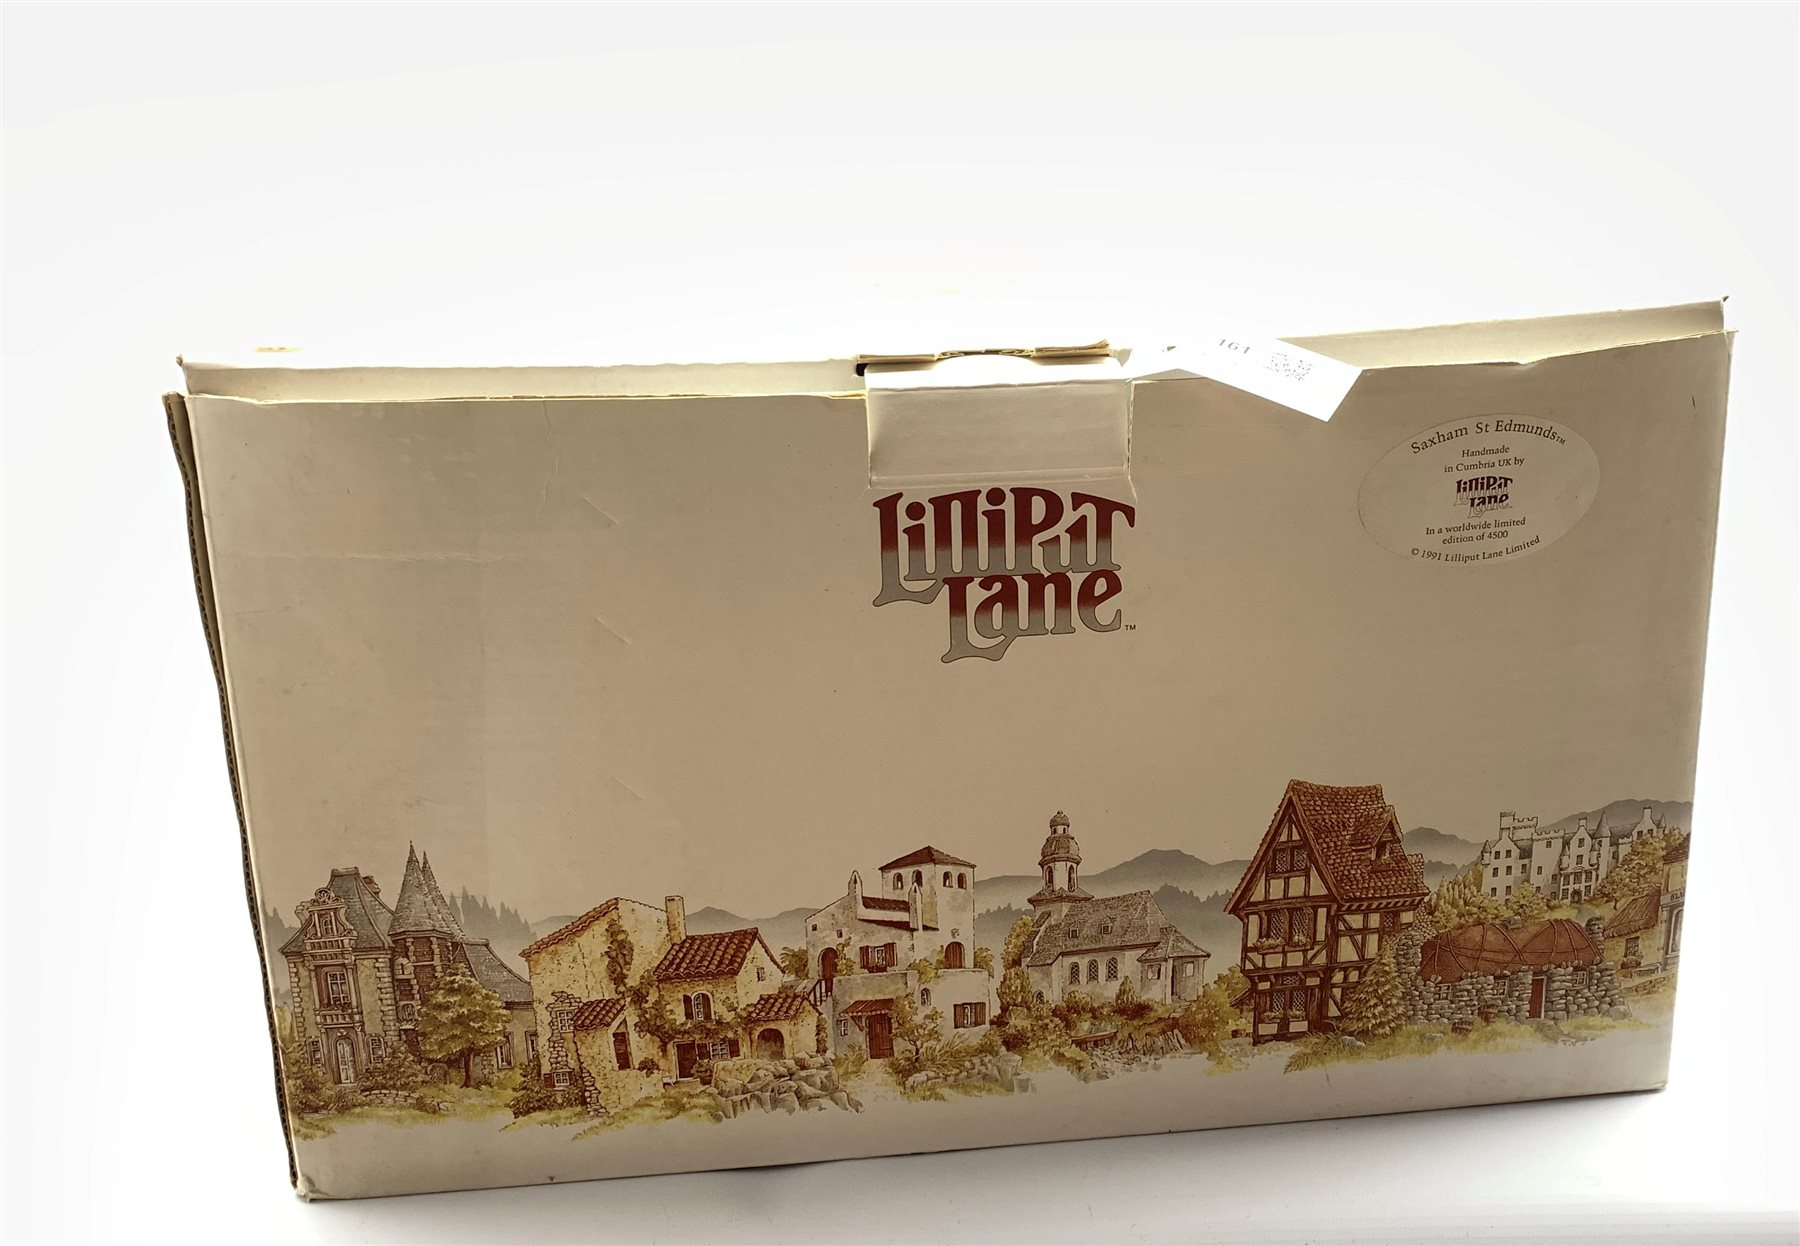 Large Lilliput Lane limited edition model 'Saxham St. Edmunds' No. 457/4500, boxed with certificate, - Image 2 of 3